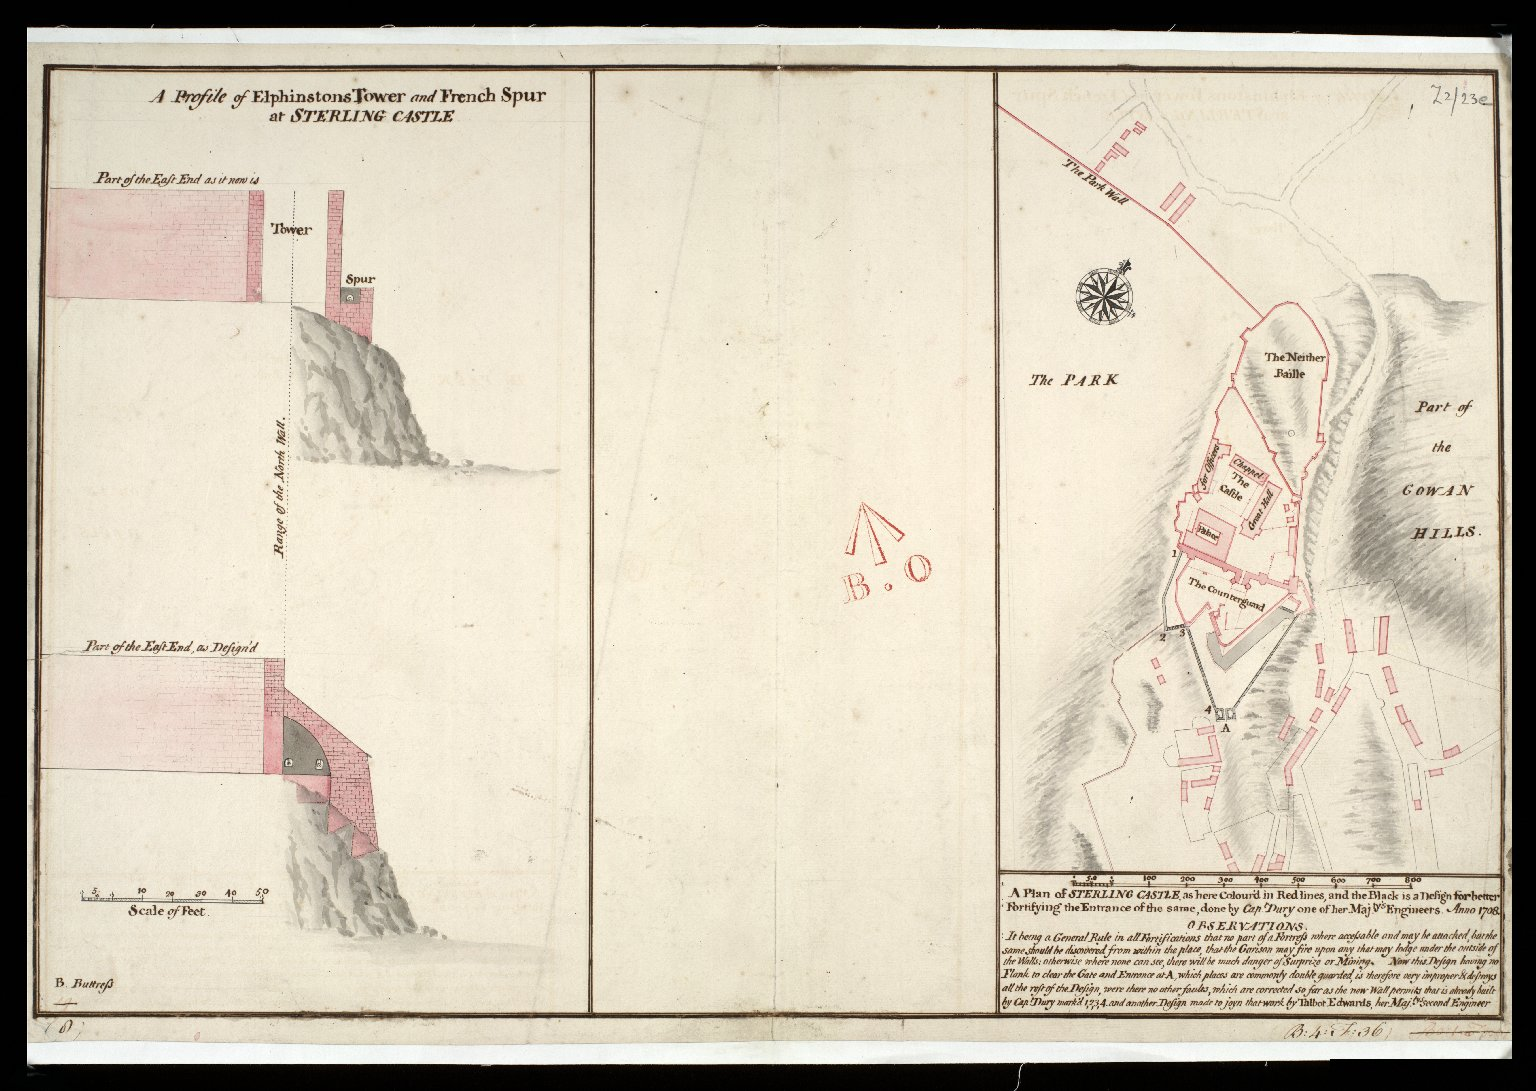 A Plan of Sterling [i.e. Stirling] Castle, as here color'd in red lines, and the black is a design for better fortifying the entrance of the same : A profile of Elphinstons Tower and French Spur at Sterling Castle [copy] [1 of 1]